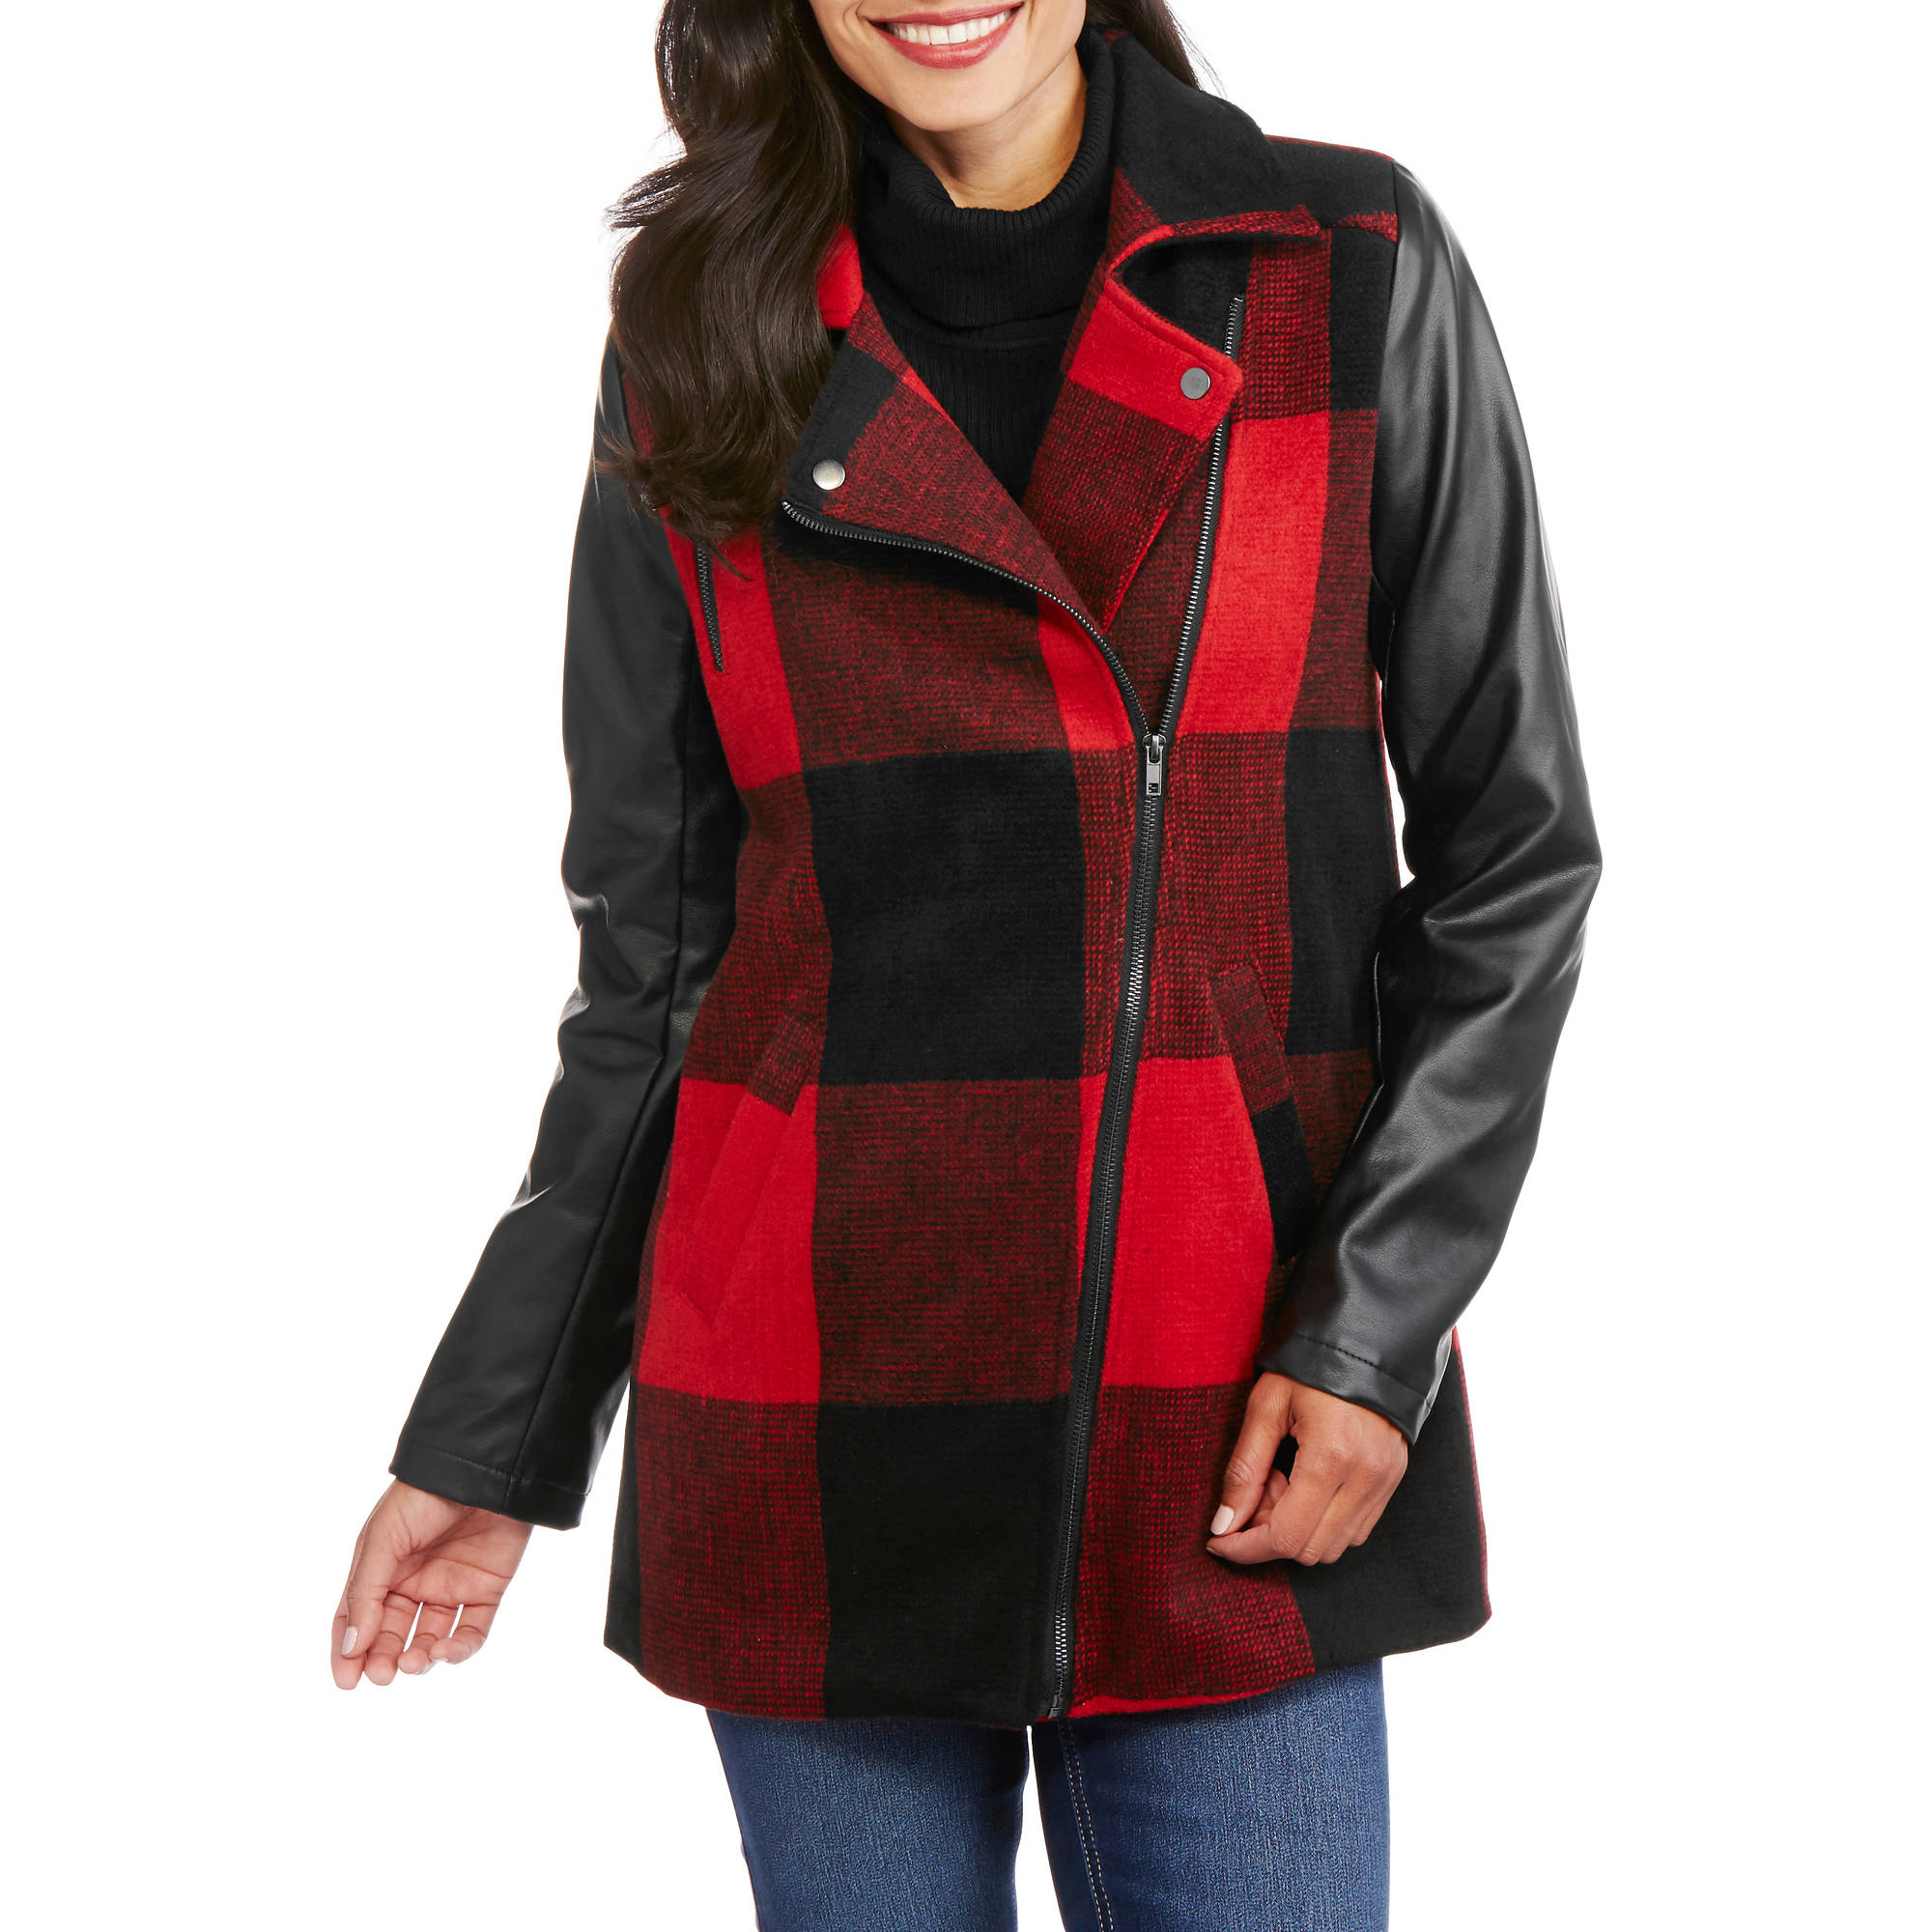 Red and Black Jackets for Women